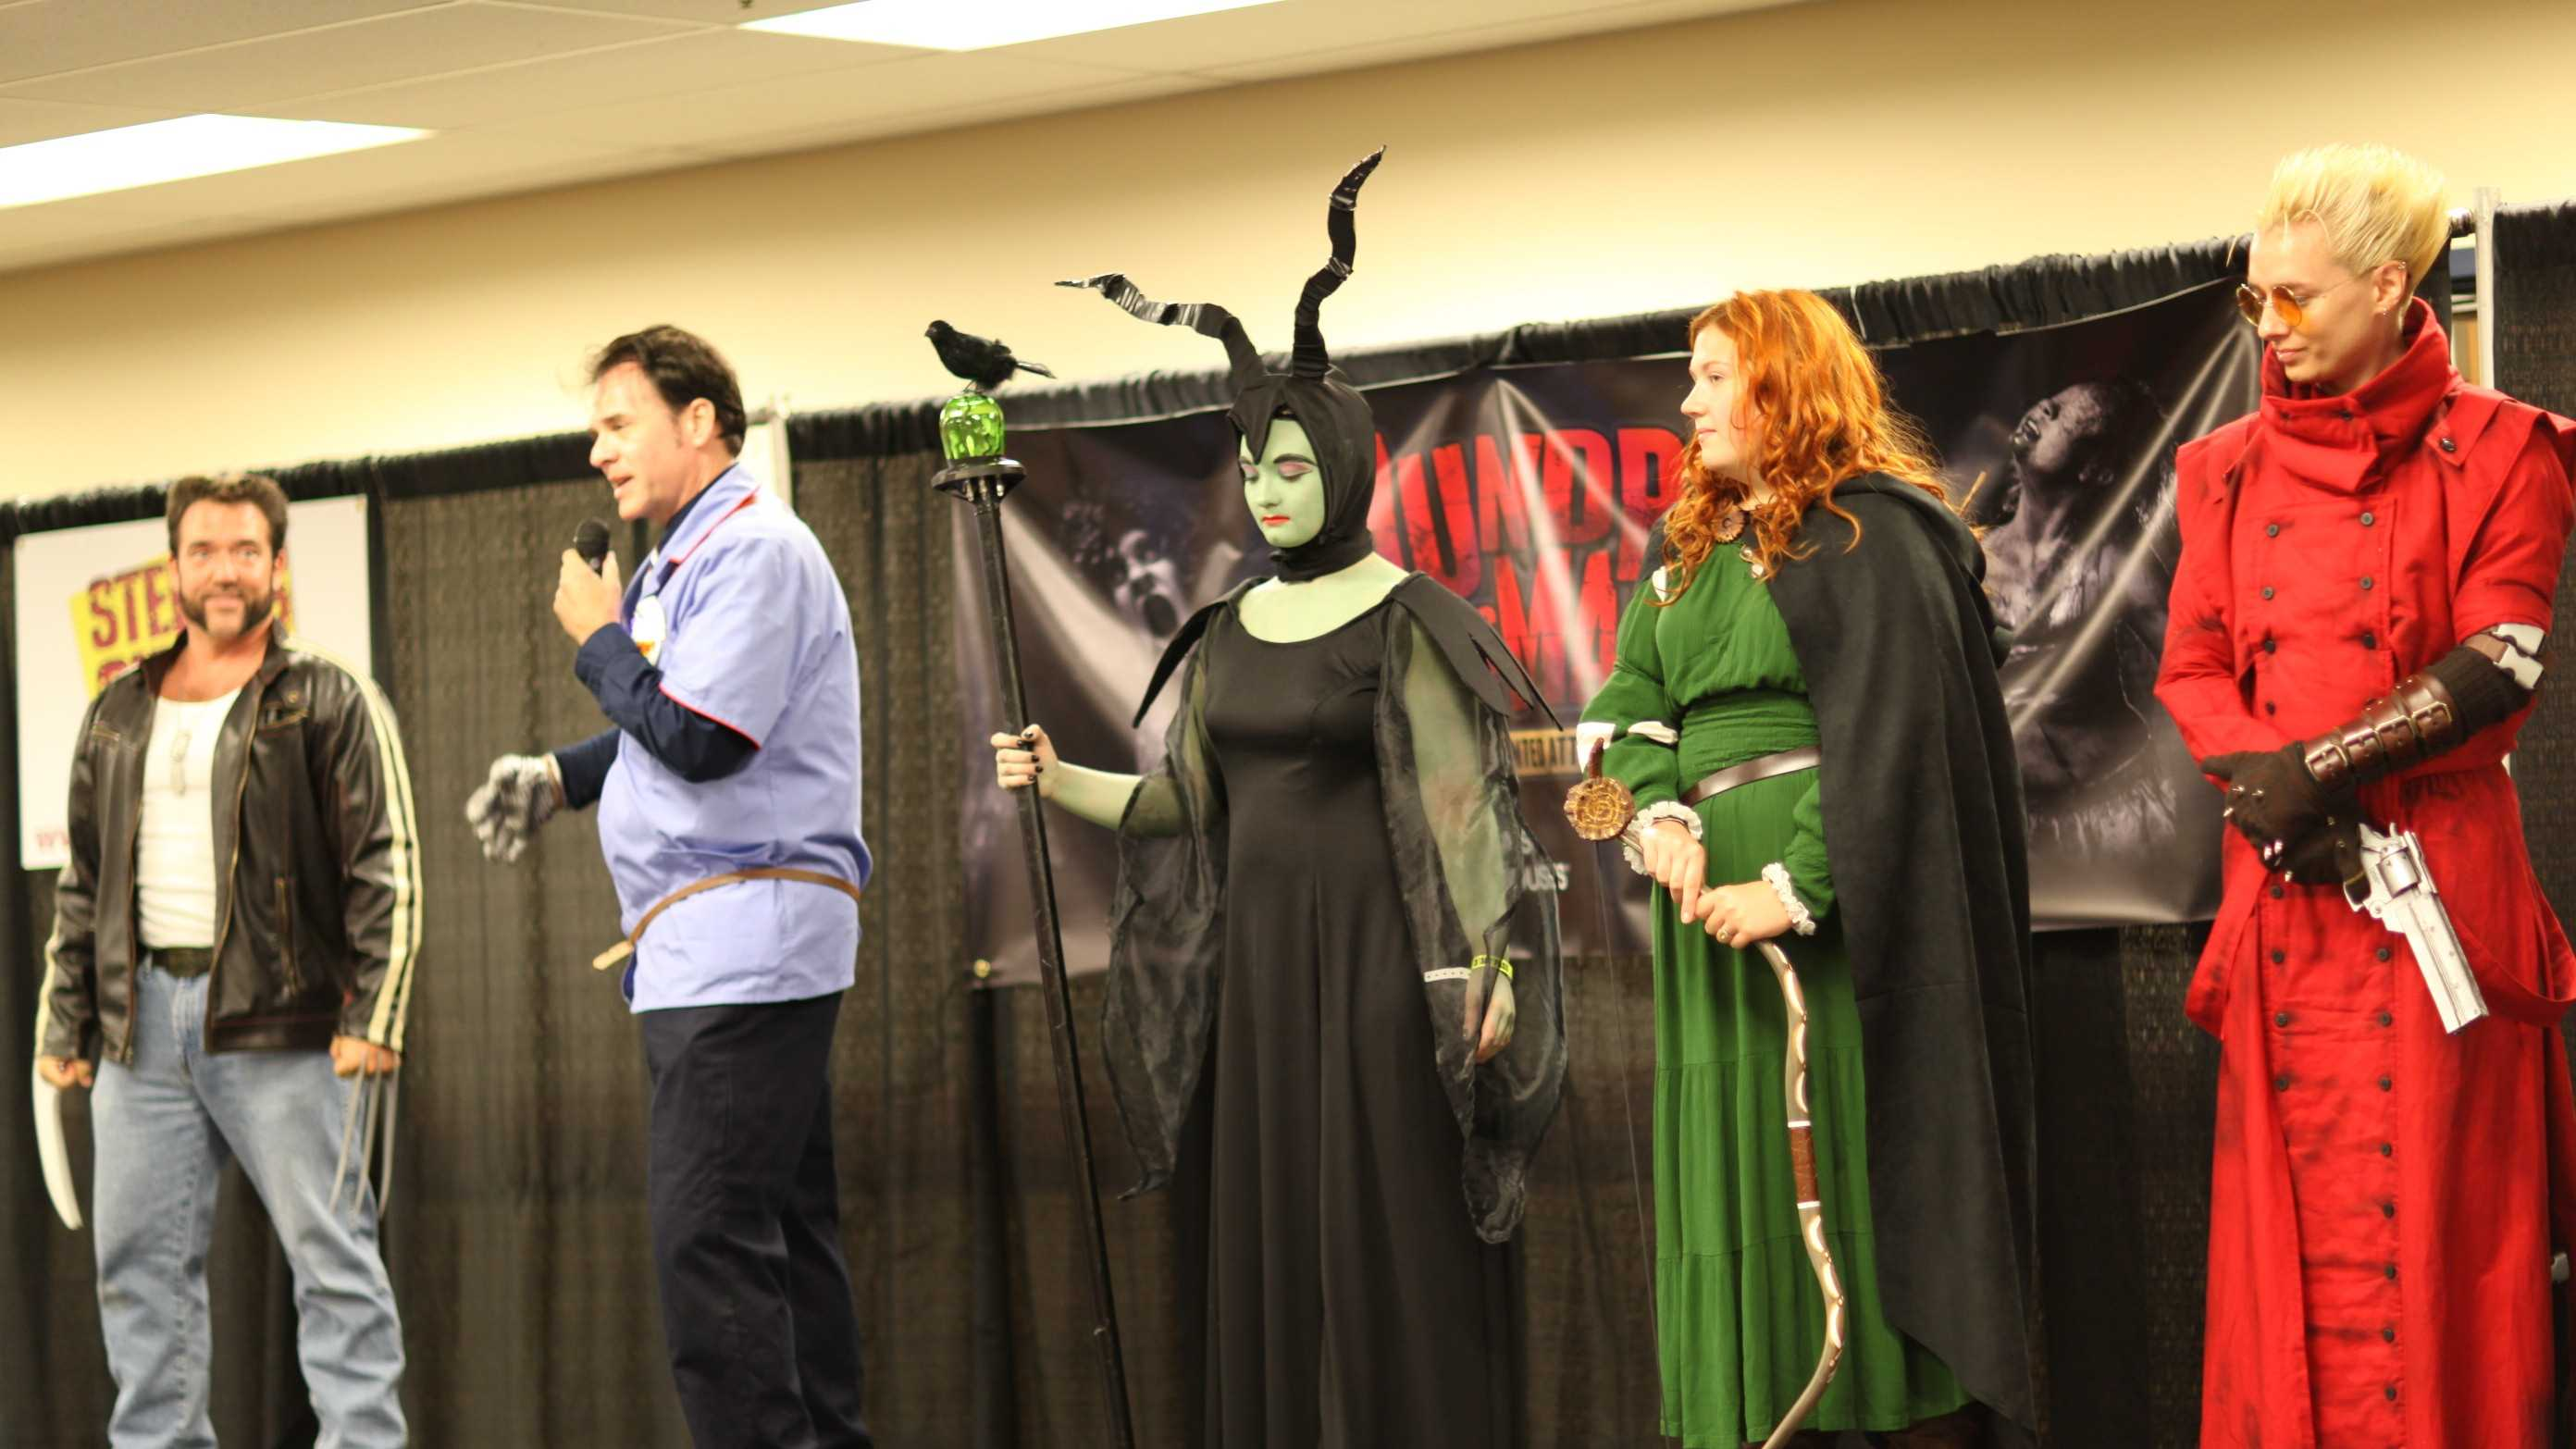 Check out the contestants from the 2014 Steel City Con Costume Contest in the Adult and Teen divisions.